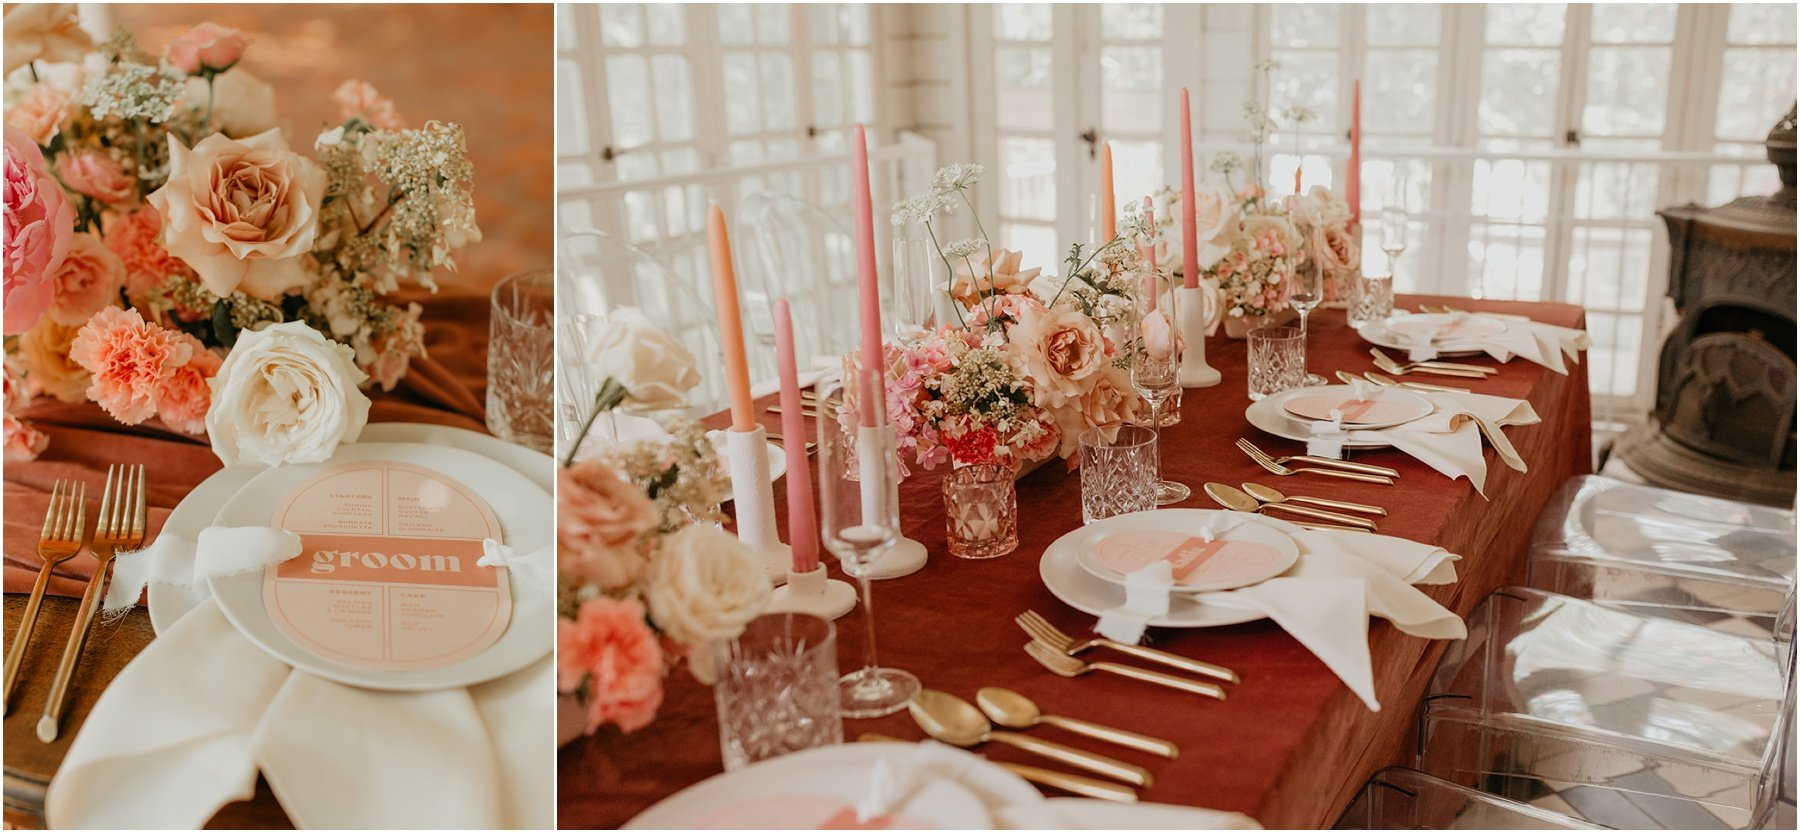 wedding dinner table set up with blush and peach blooms, a burgundy velvet runner and pink candlesticks at woodbine mansion